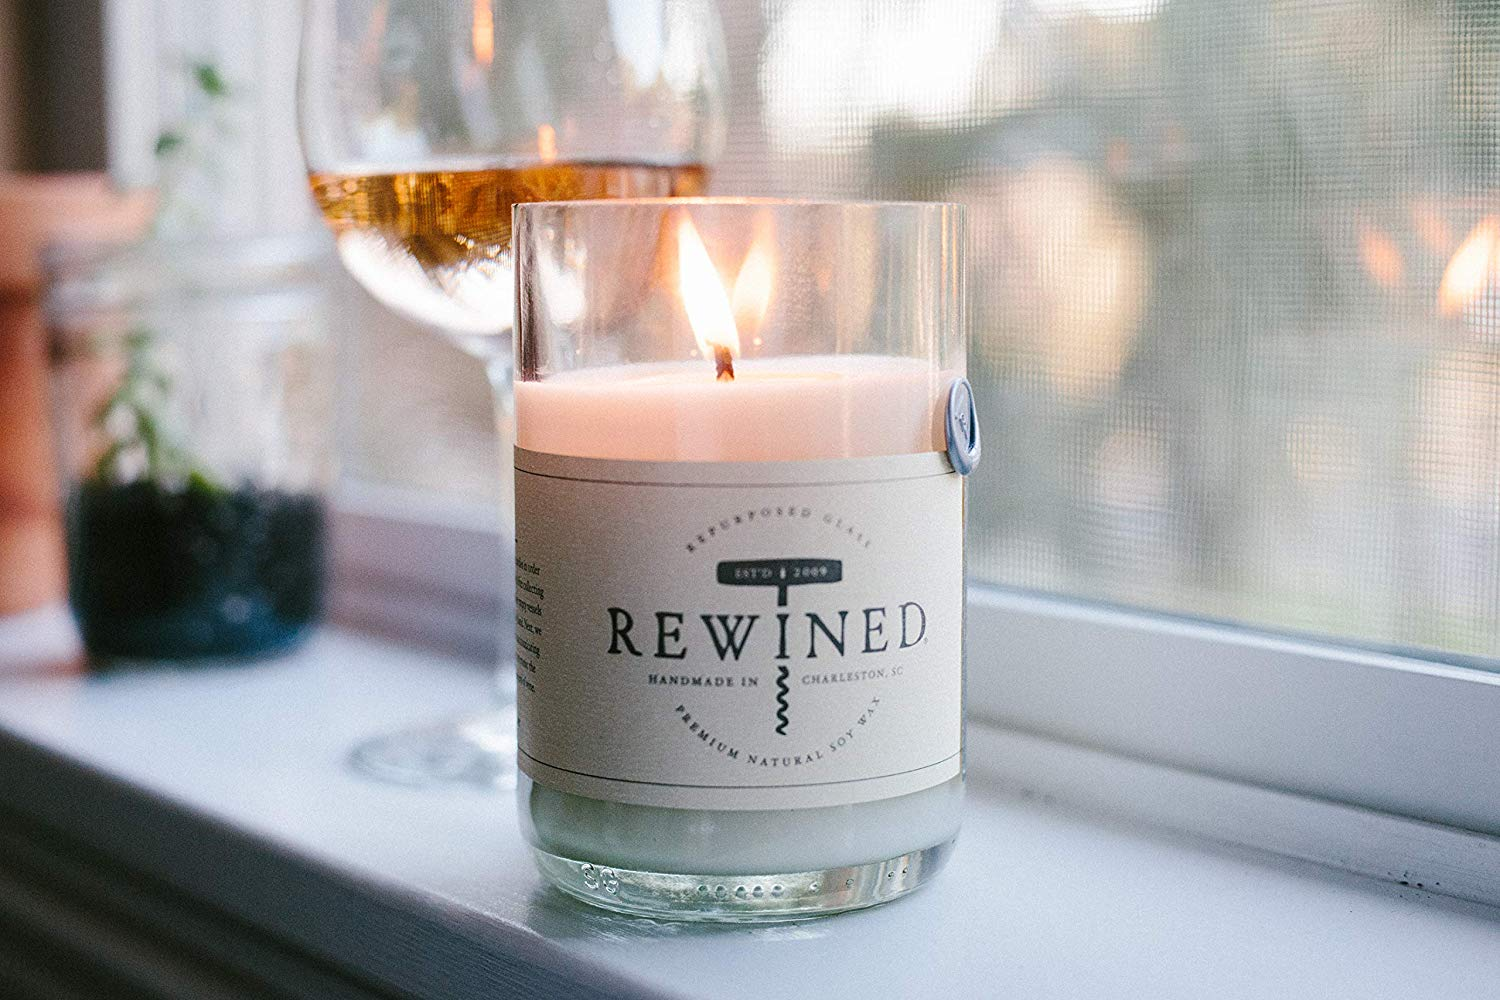 Rewined Rose Fragrance Soy Wax Scented Candle with Notes of Rose Petal, White Peach, Pink Peppercorn and Crisp Minerality